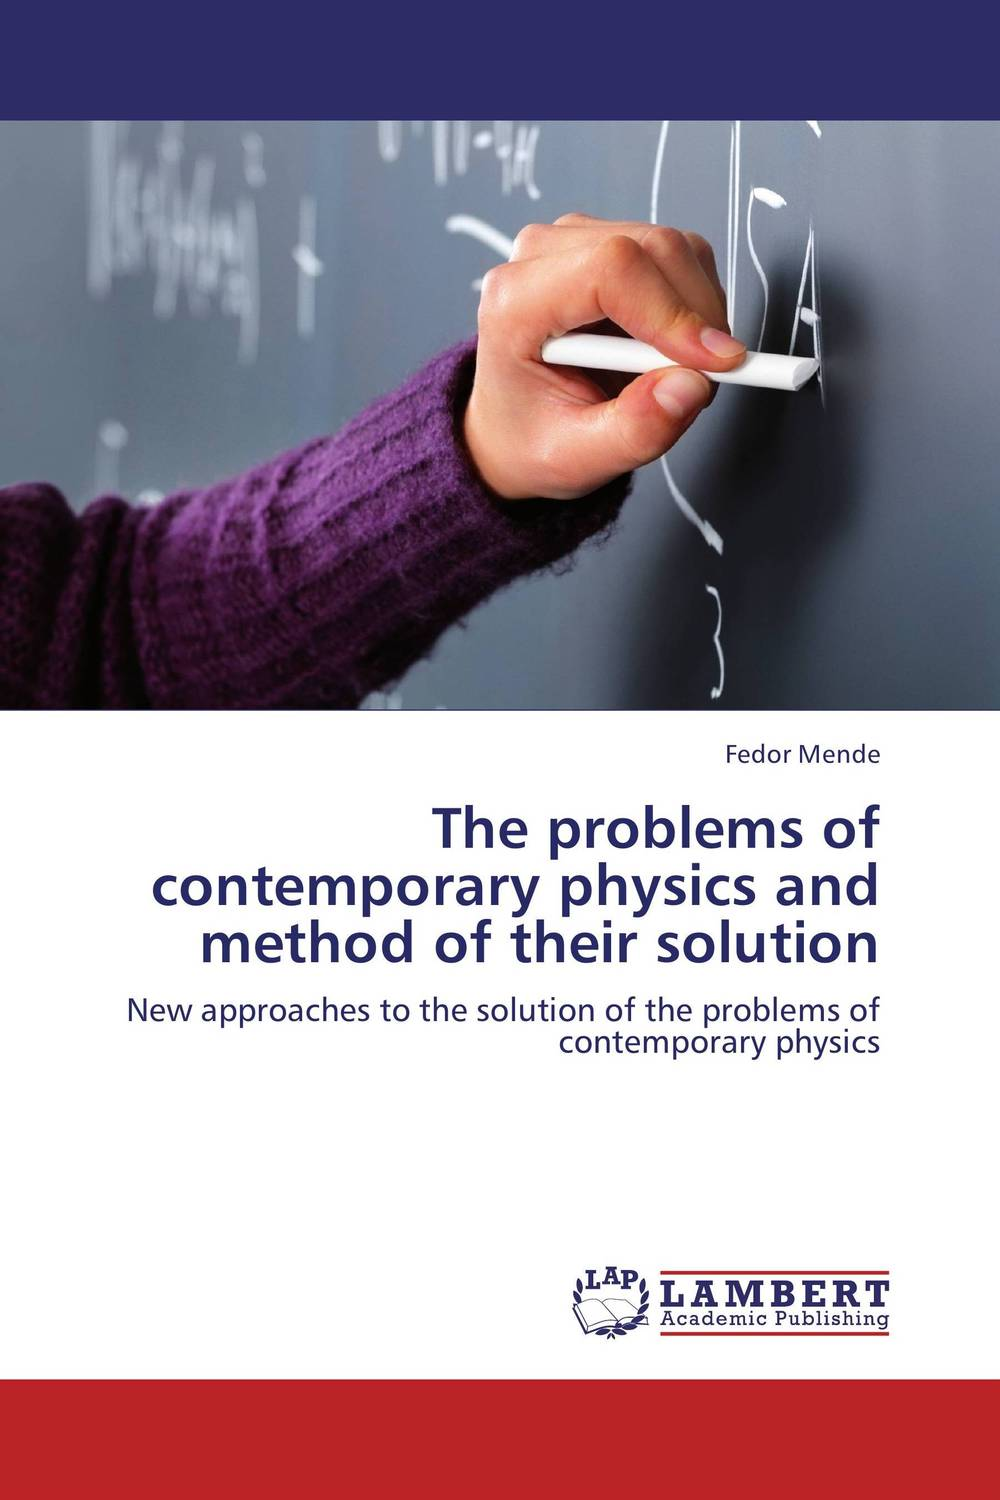 The problems of contemporary physics and method of their solution